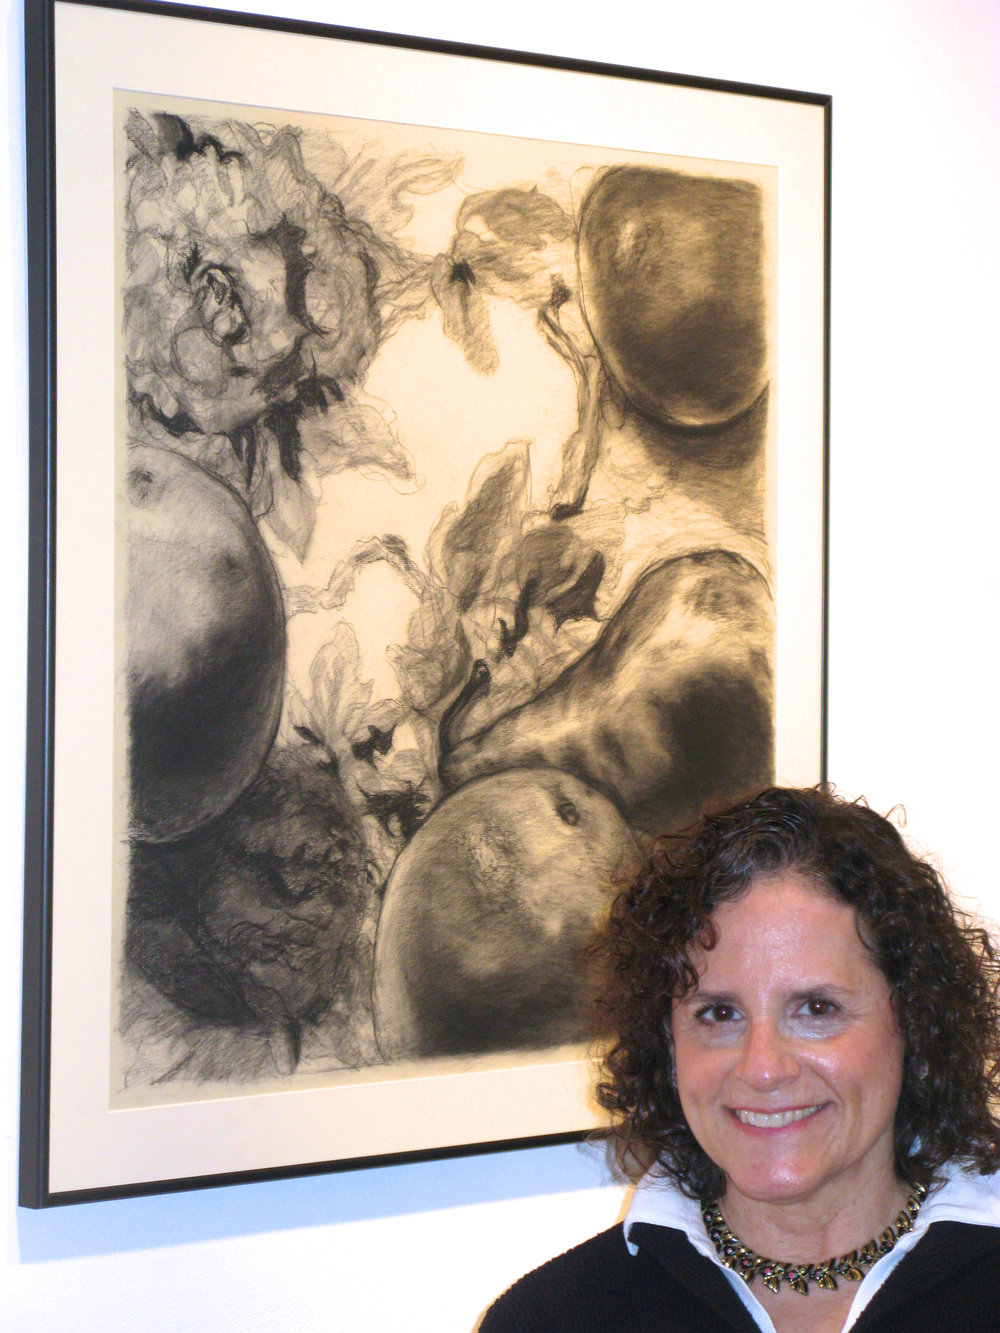 April 2009 - Leona's drawing is selected for the New Haven Paint and Clay Annual Open Exhibition at John Slade Ely House in New Haven, CT.